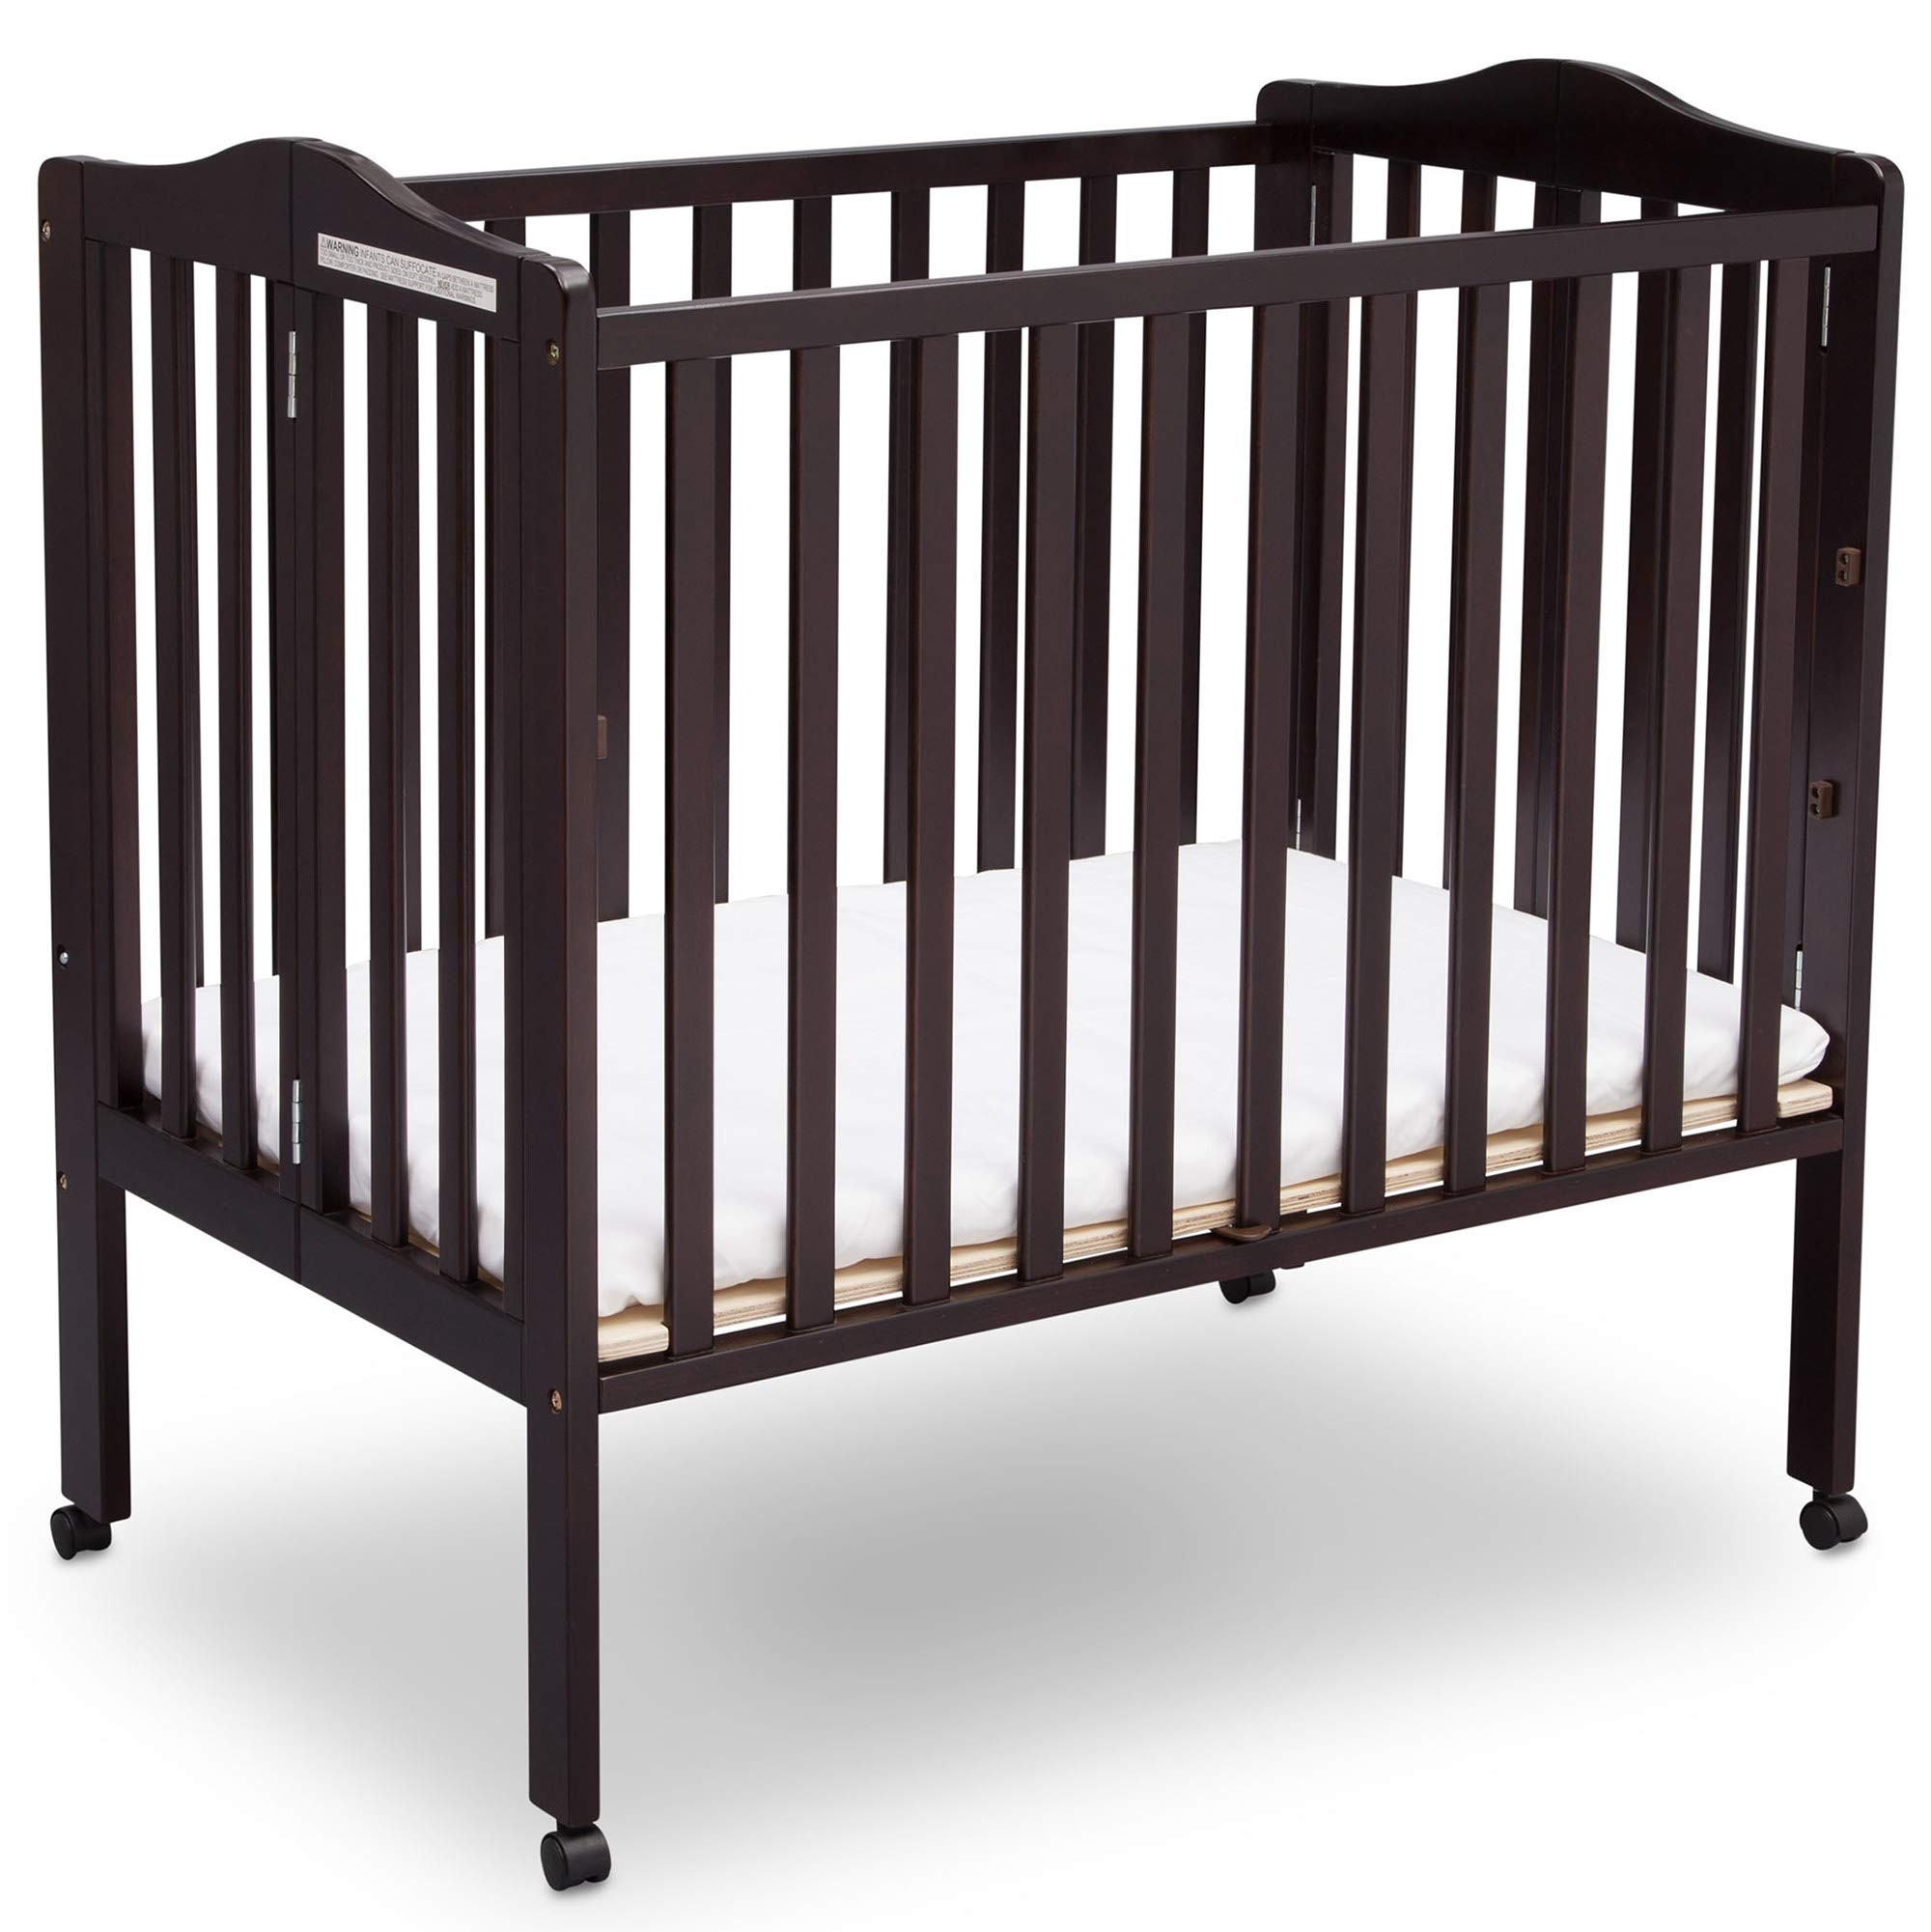 Delta Children Delta Children Folding Portable Mini Baby Crib with Mattress, Dark Espresso, Dark Espresso by Delta Children (Image #1)